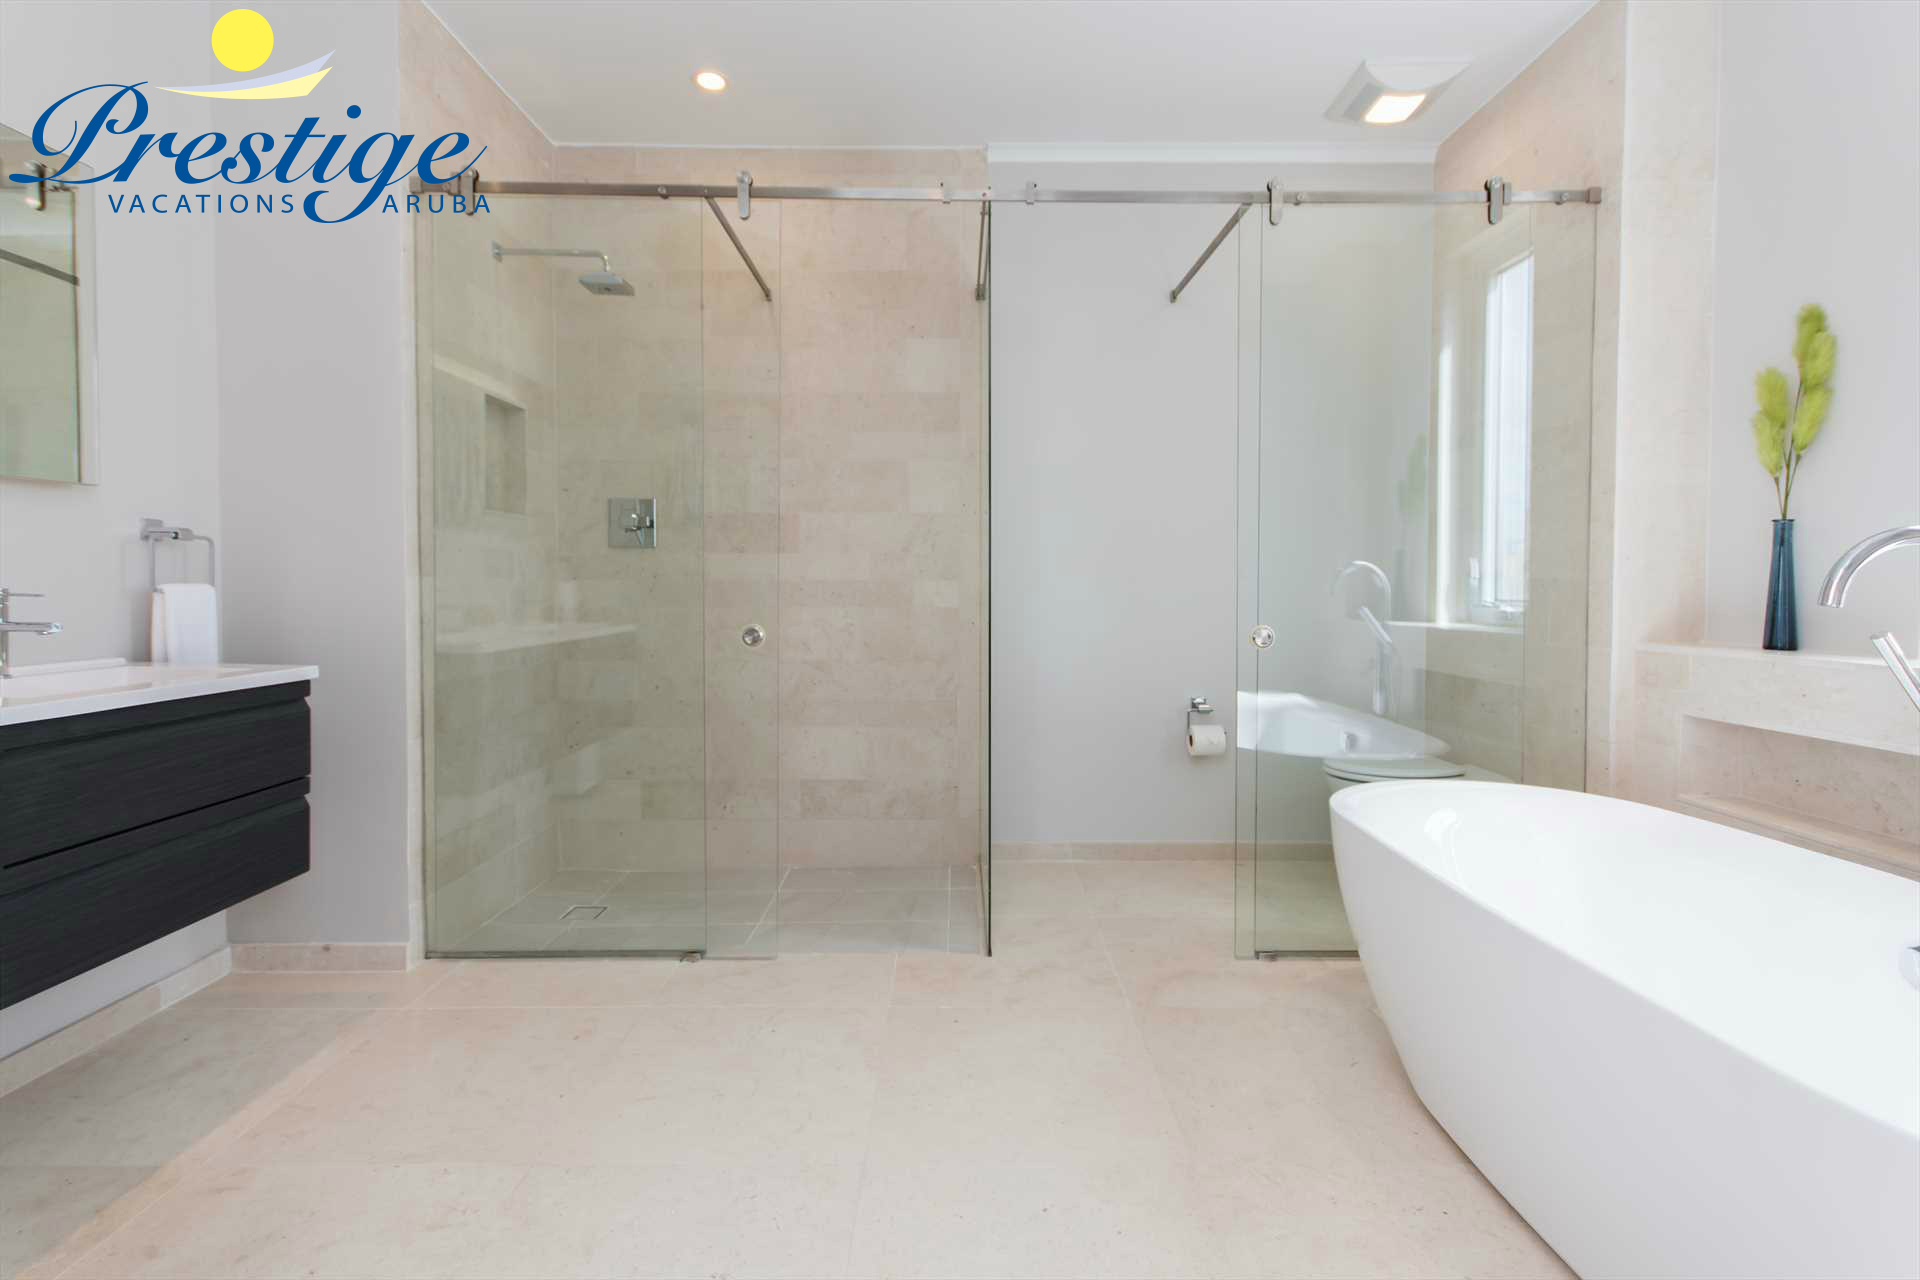 The master modern en-suite bathroom with glass-enclosed shower and toilet area